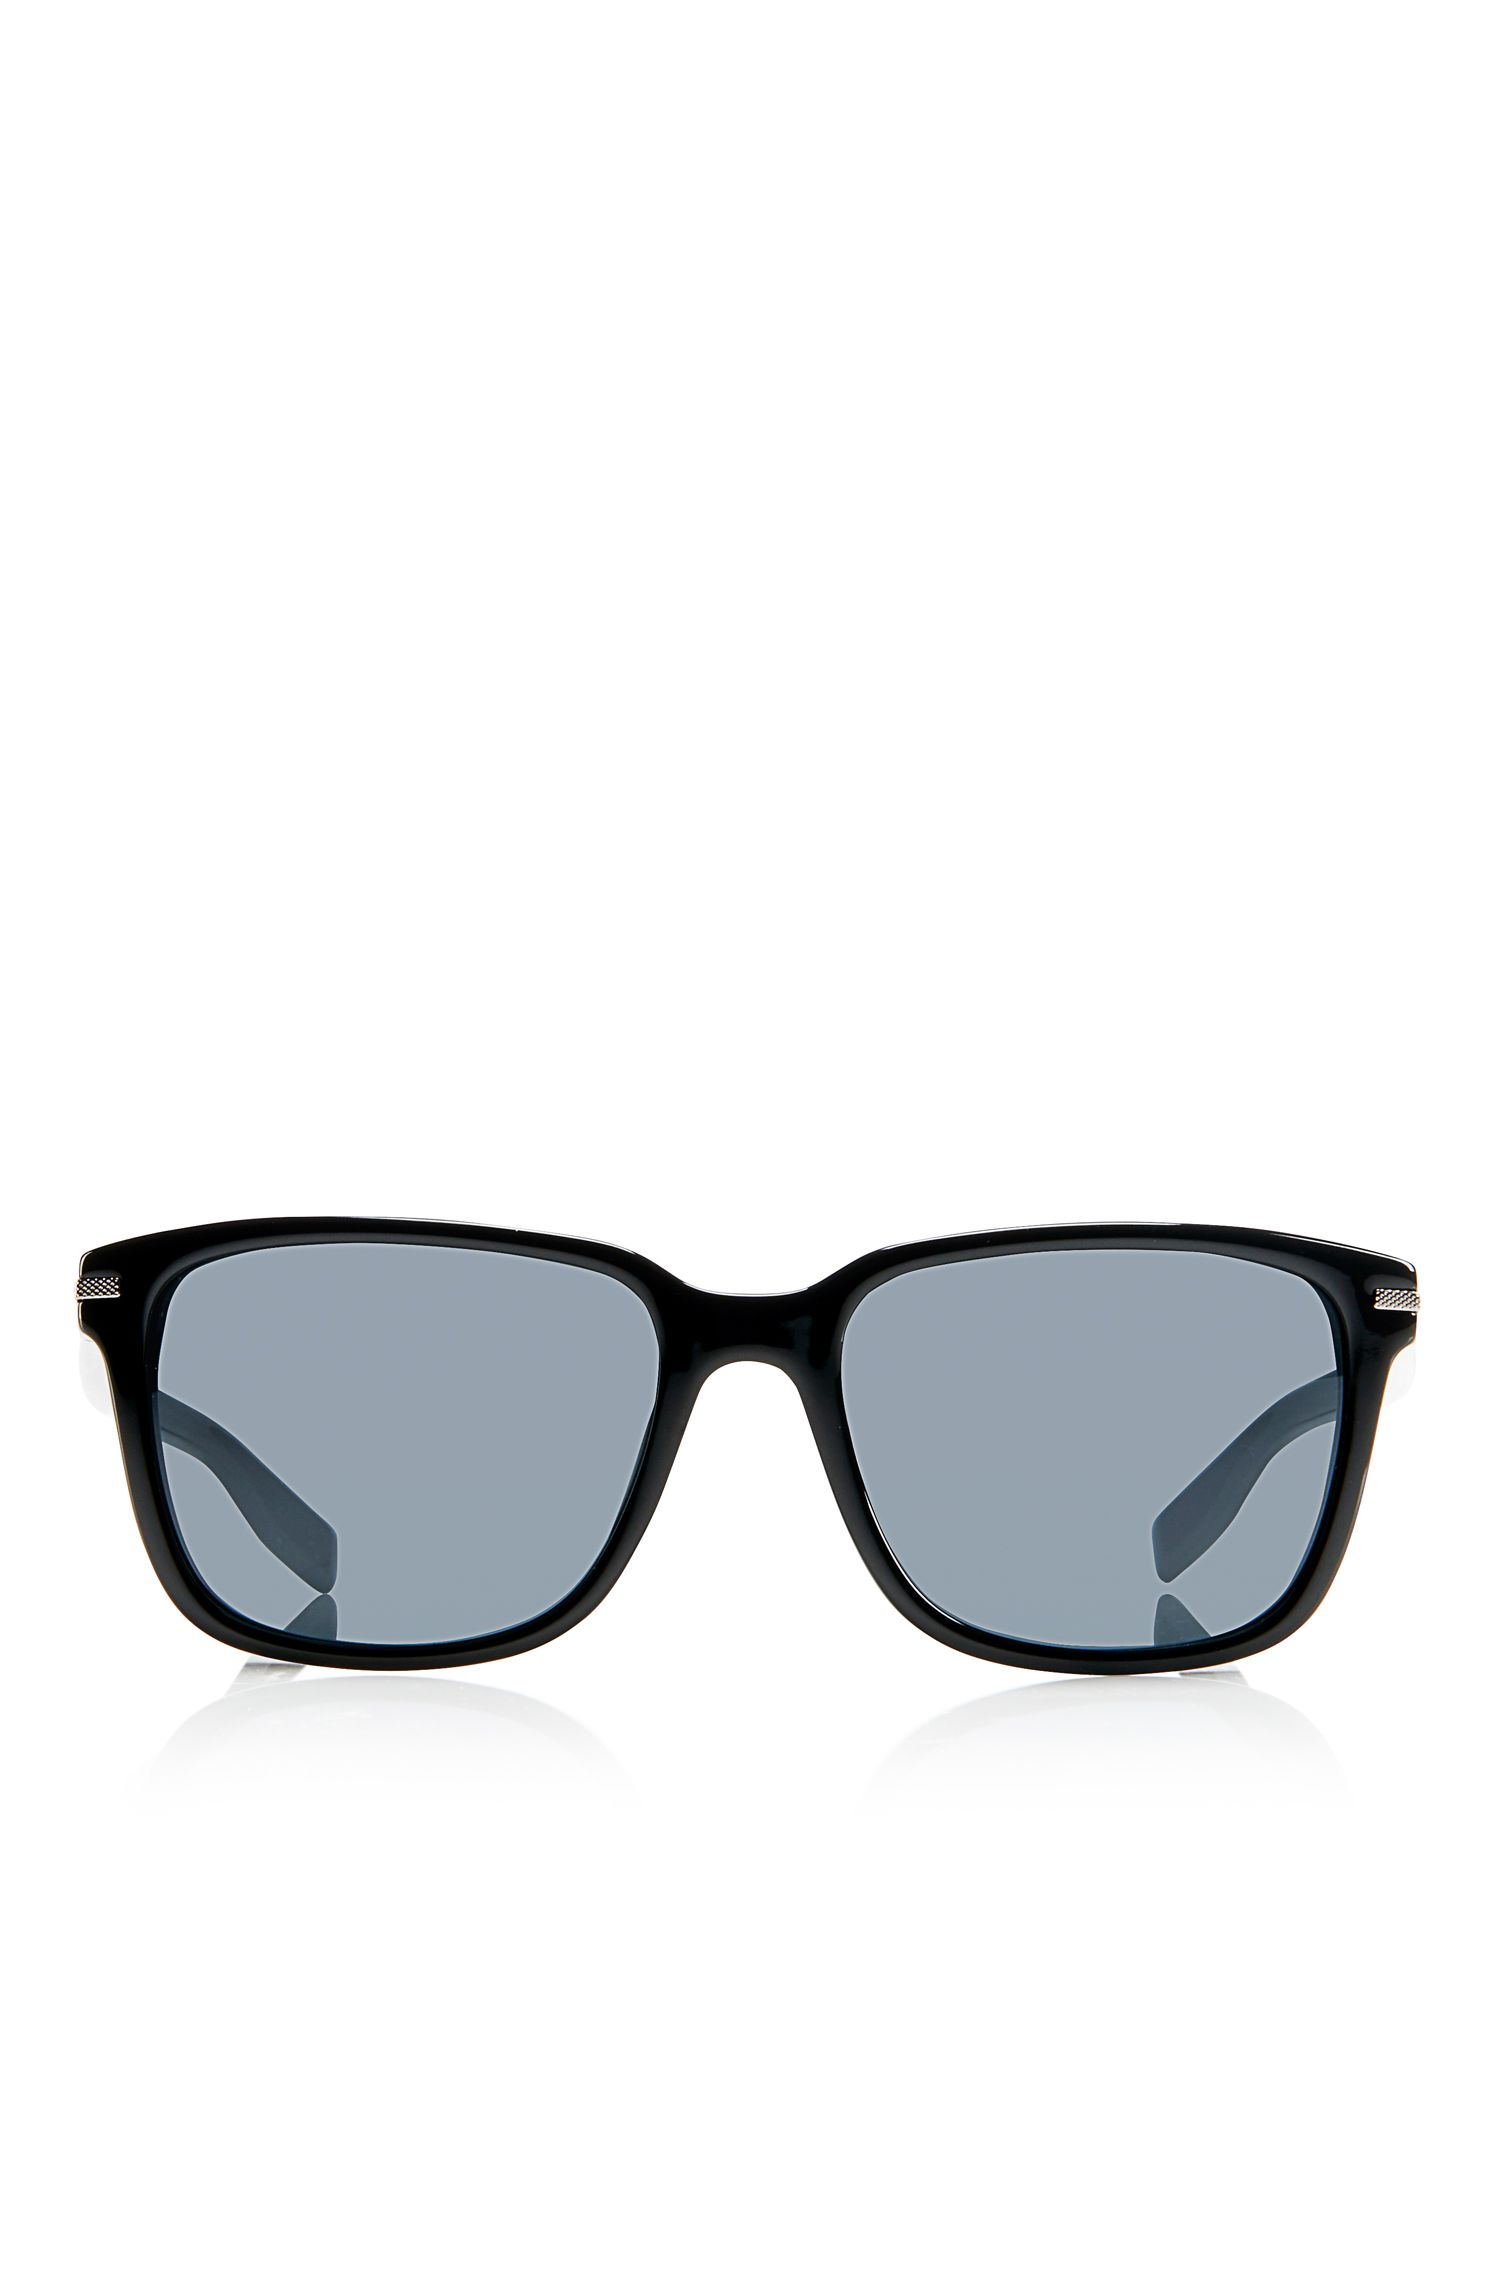 'Sunglasses' | Black Mirror Lens Sunglasses